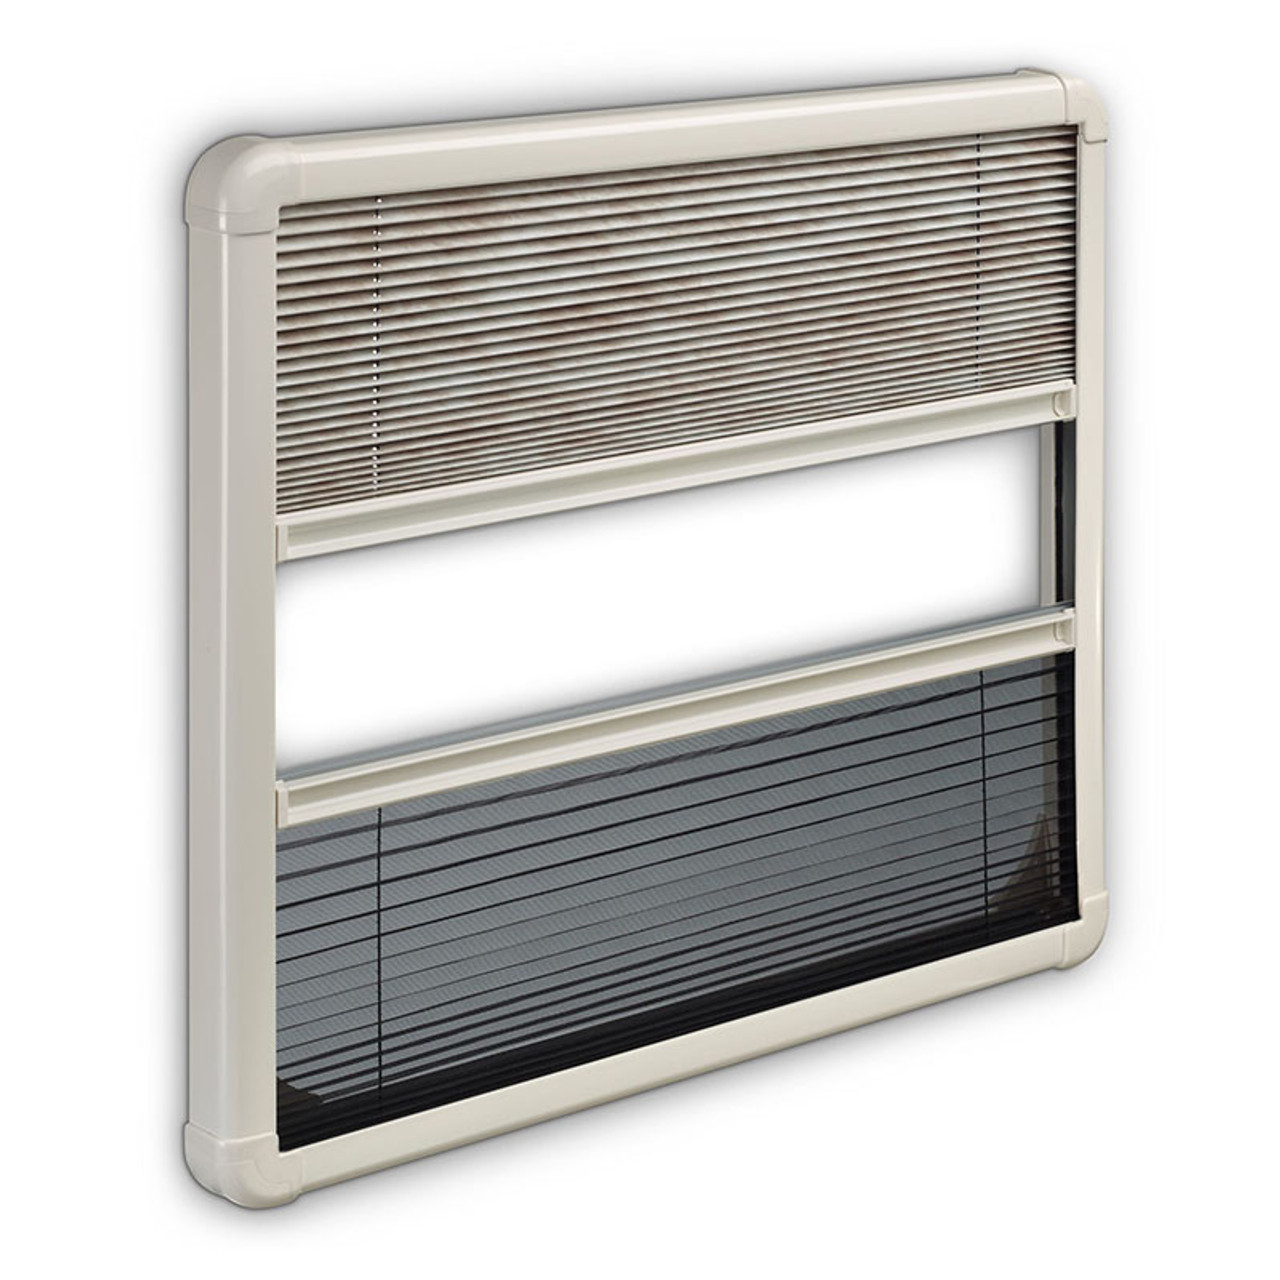 The Dometic S7P hinged window with optional pleated blind. The pleated blind also includes a flyscreen.